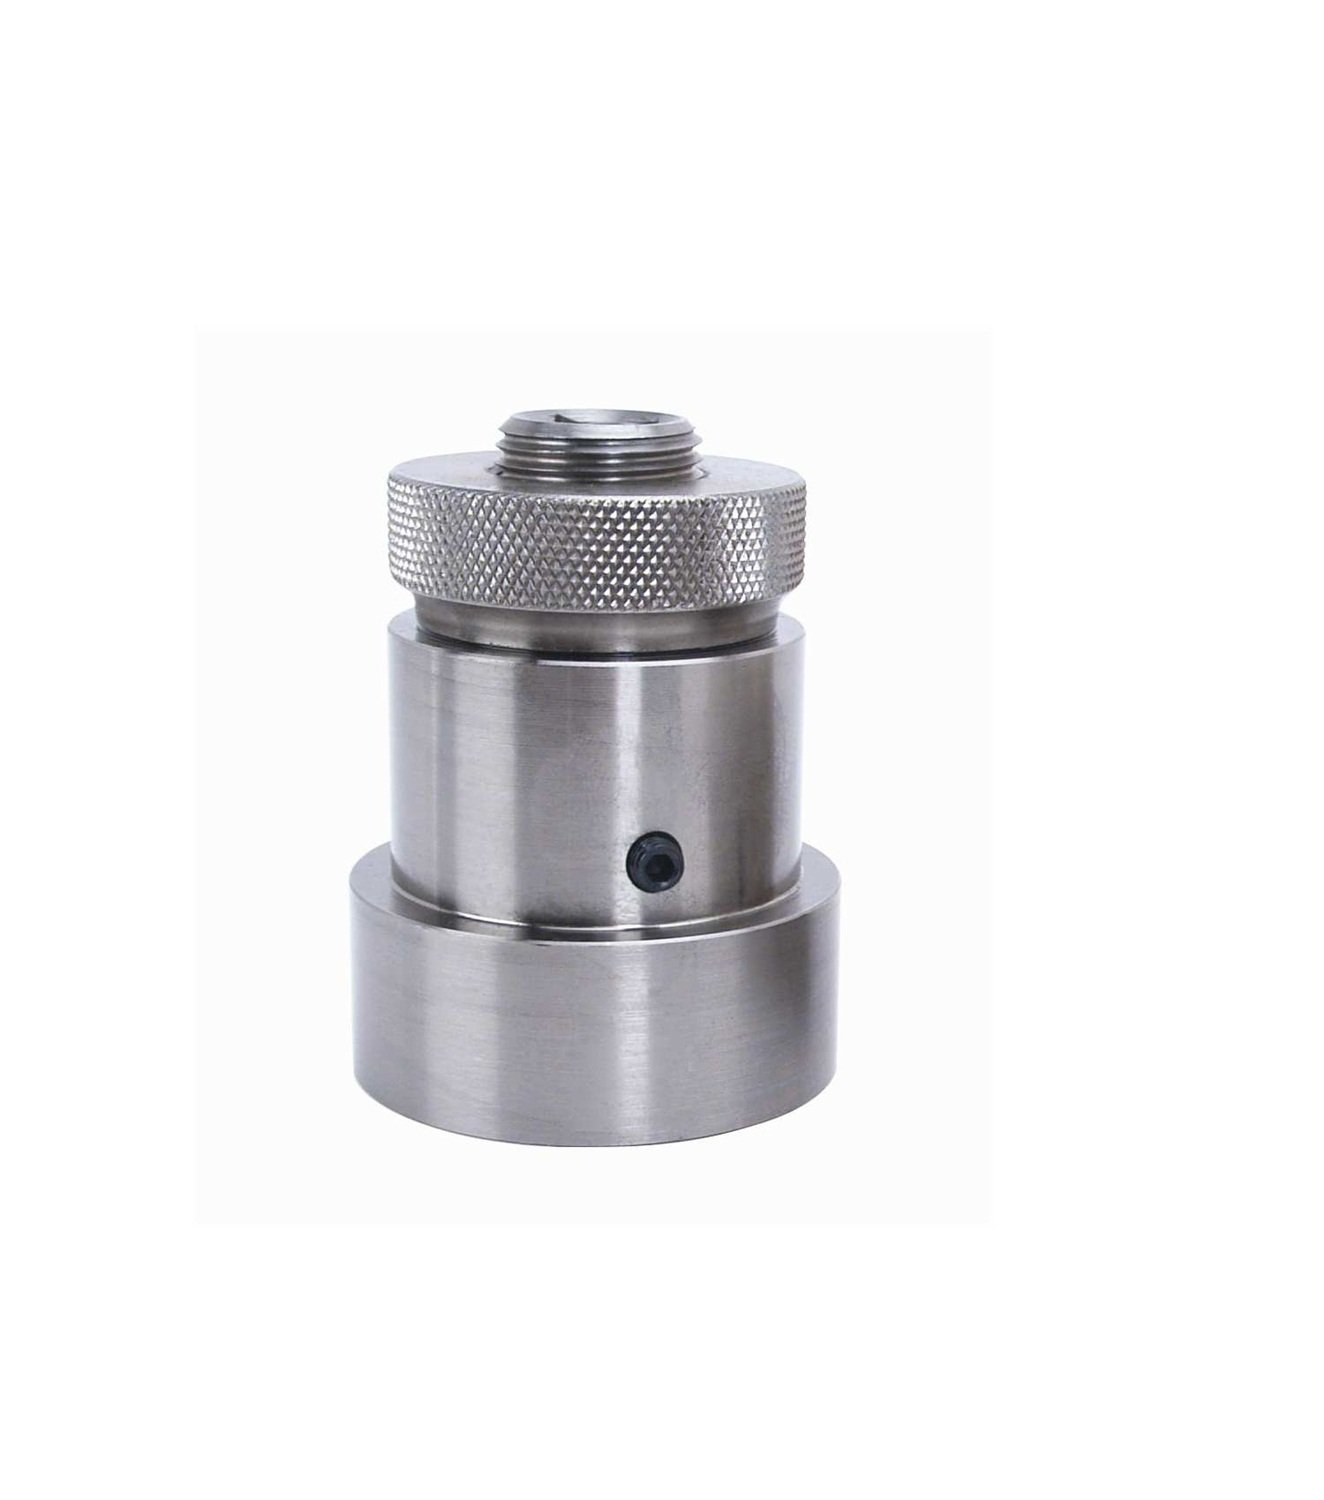 Competition Cams 4798 Crankshaft Socket for all Ford, Buick and Pontiac V8s